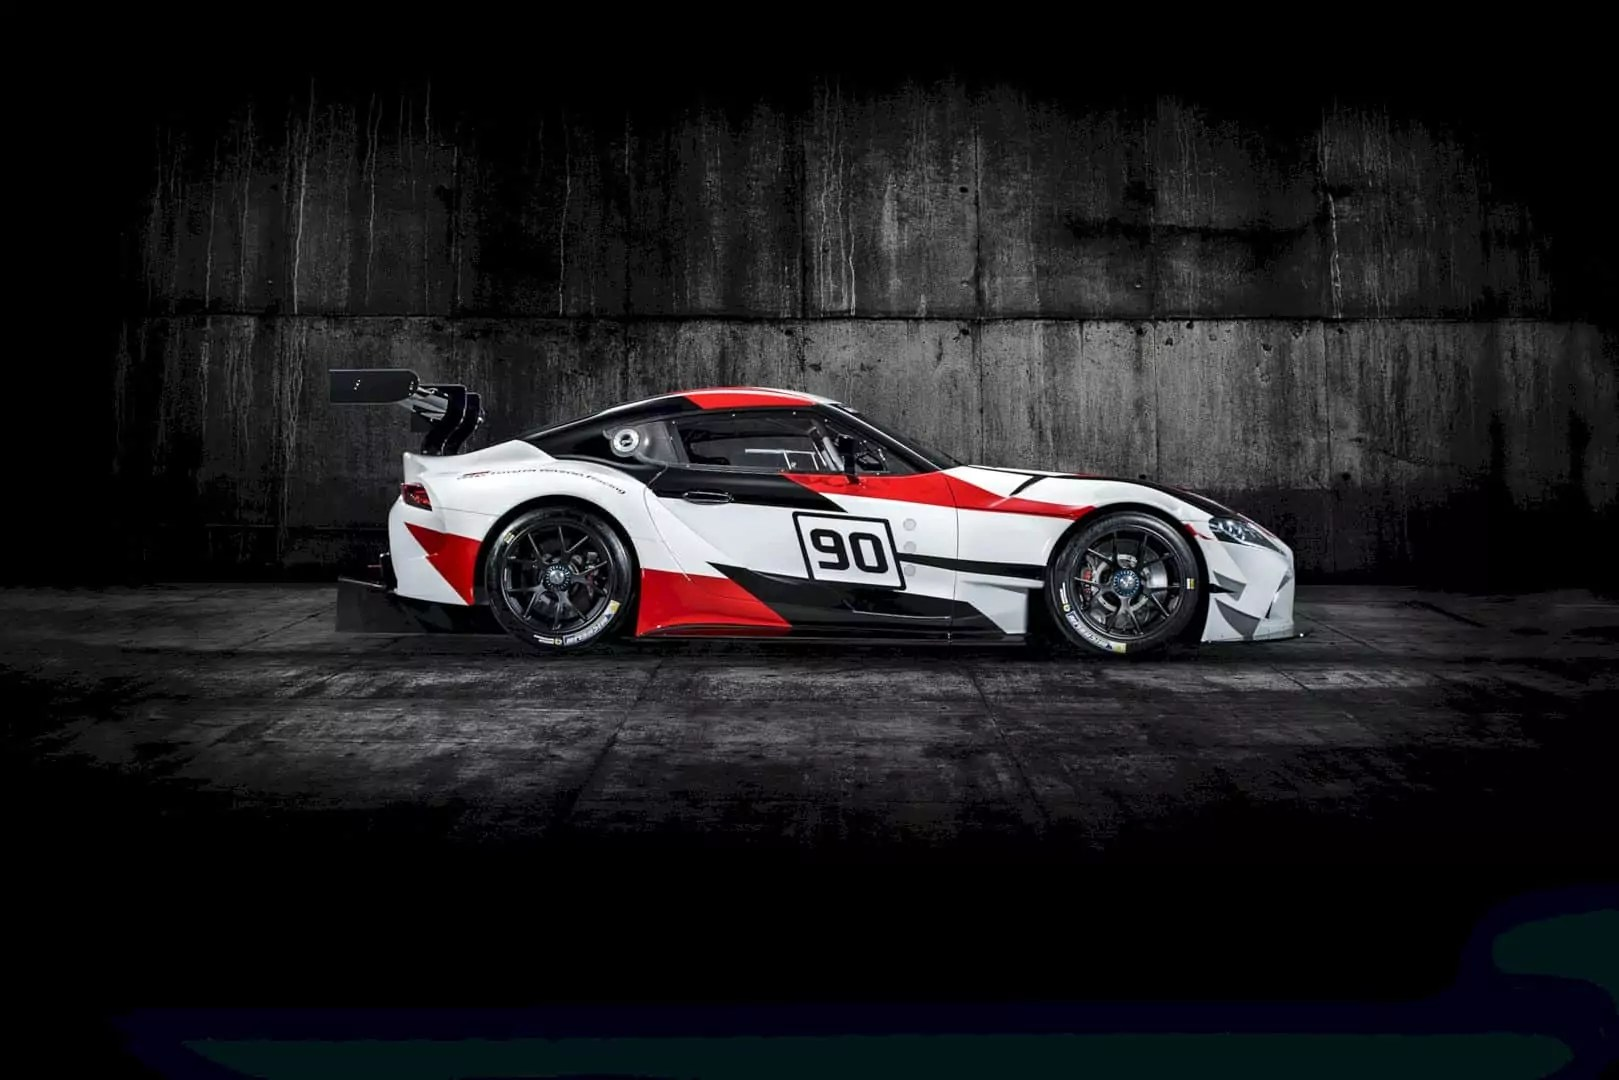 Toyota GR Supra Racing Concept: The Return of the Legend